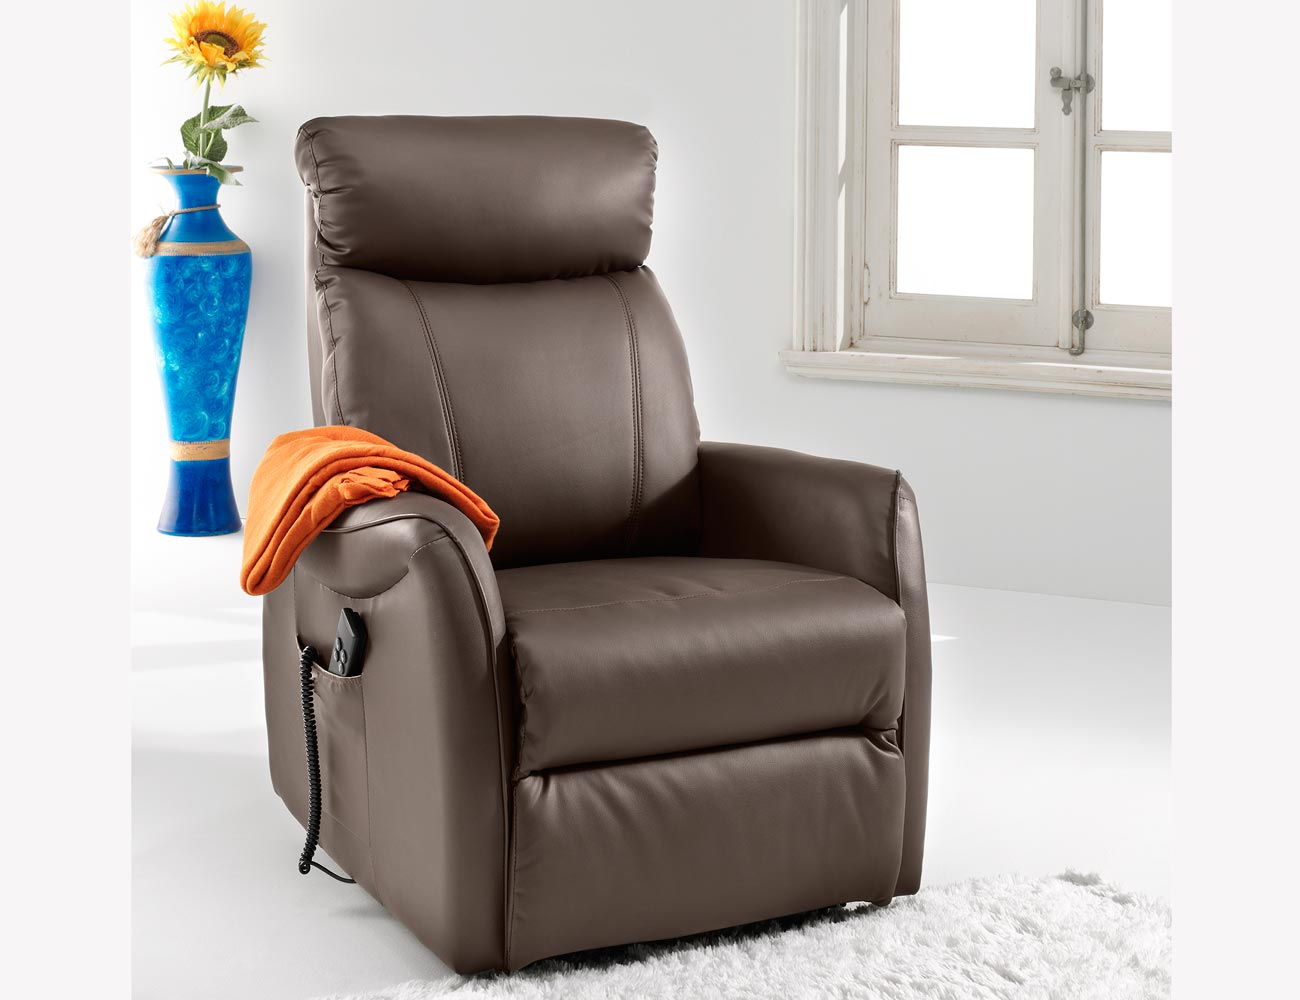 Sillon relax dos motores power lift levanta personas simil piel 3